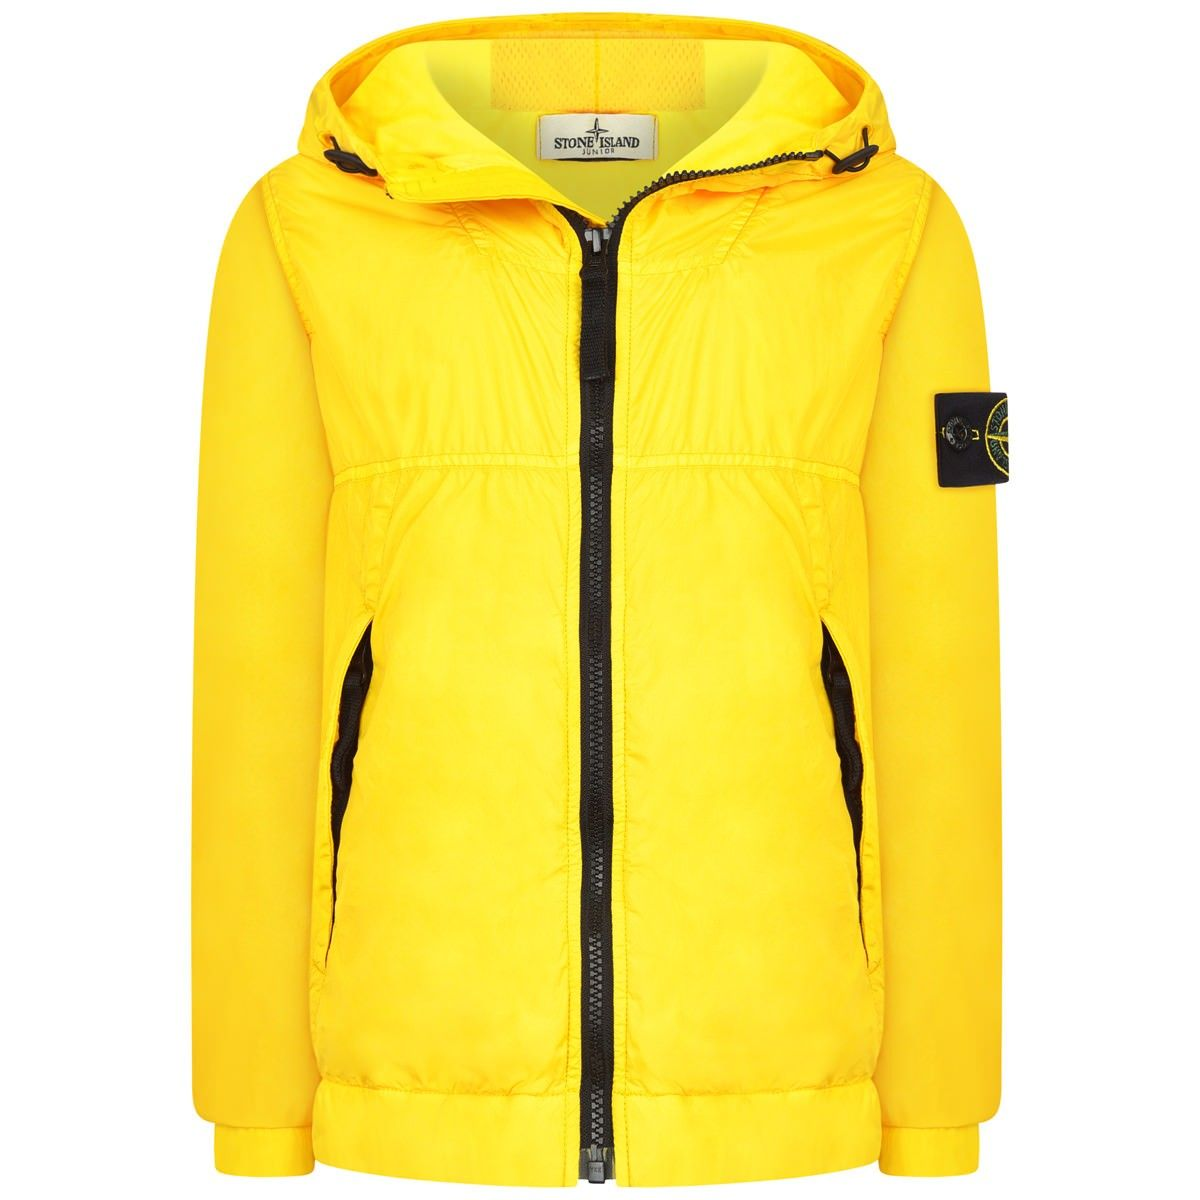 210ad8902 Stone Island Boys Yellow Waterproof Jacket